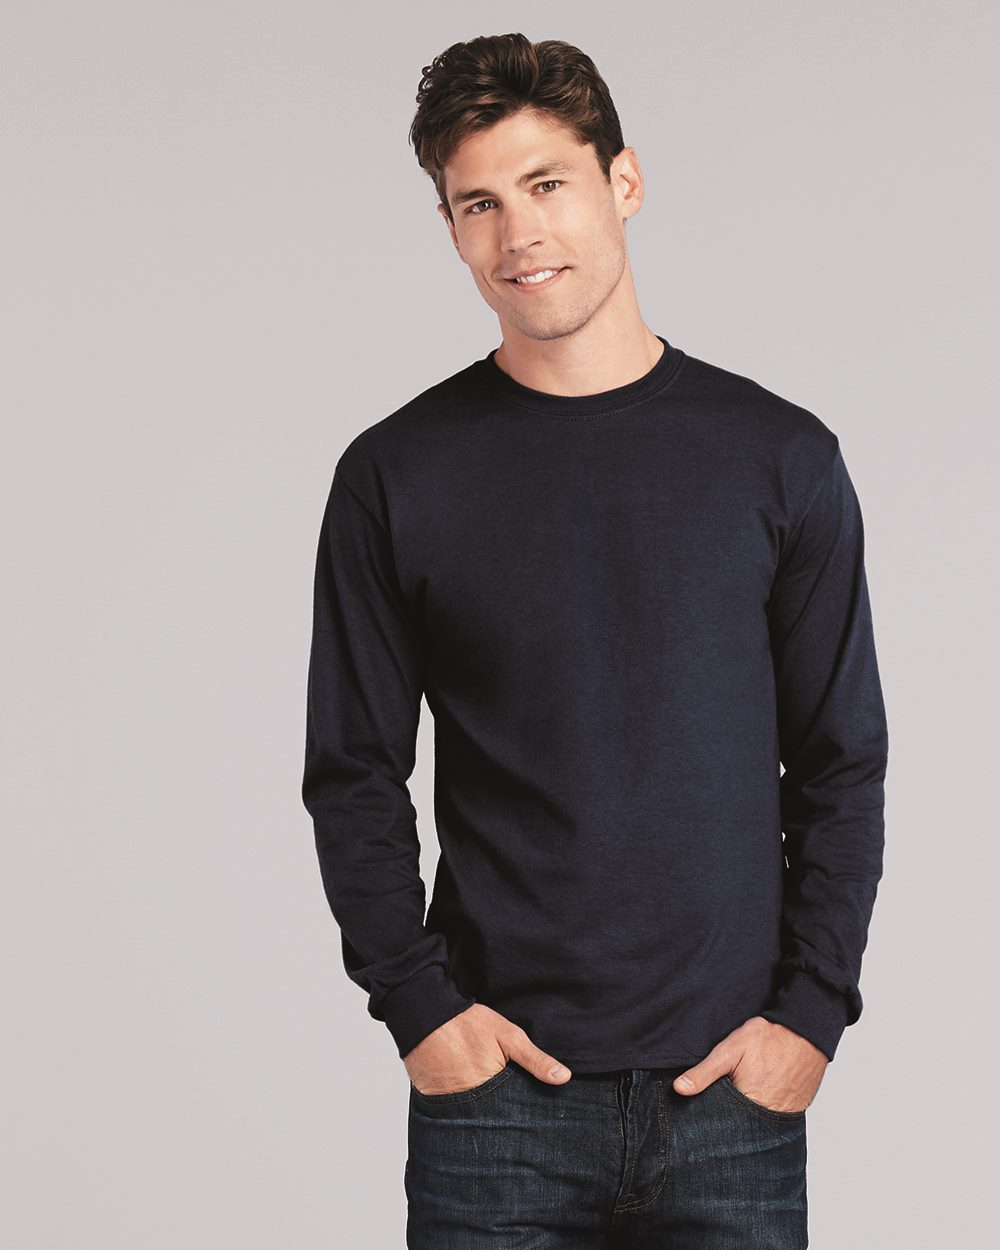 Gildan SoftStyle Long Sleeve T-Shirt Adult Men/'s Mens Plain Top tops Casual